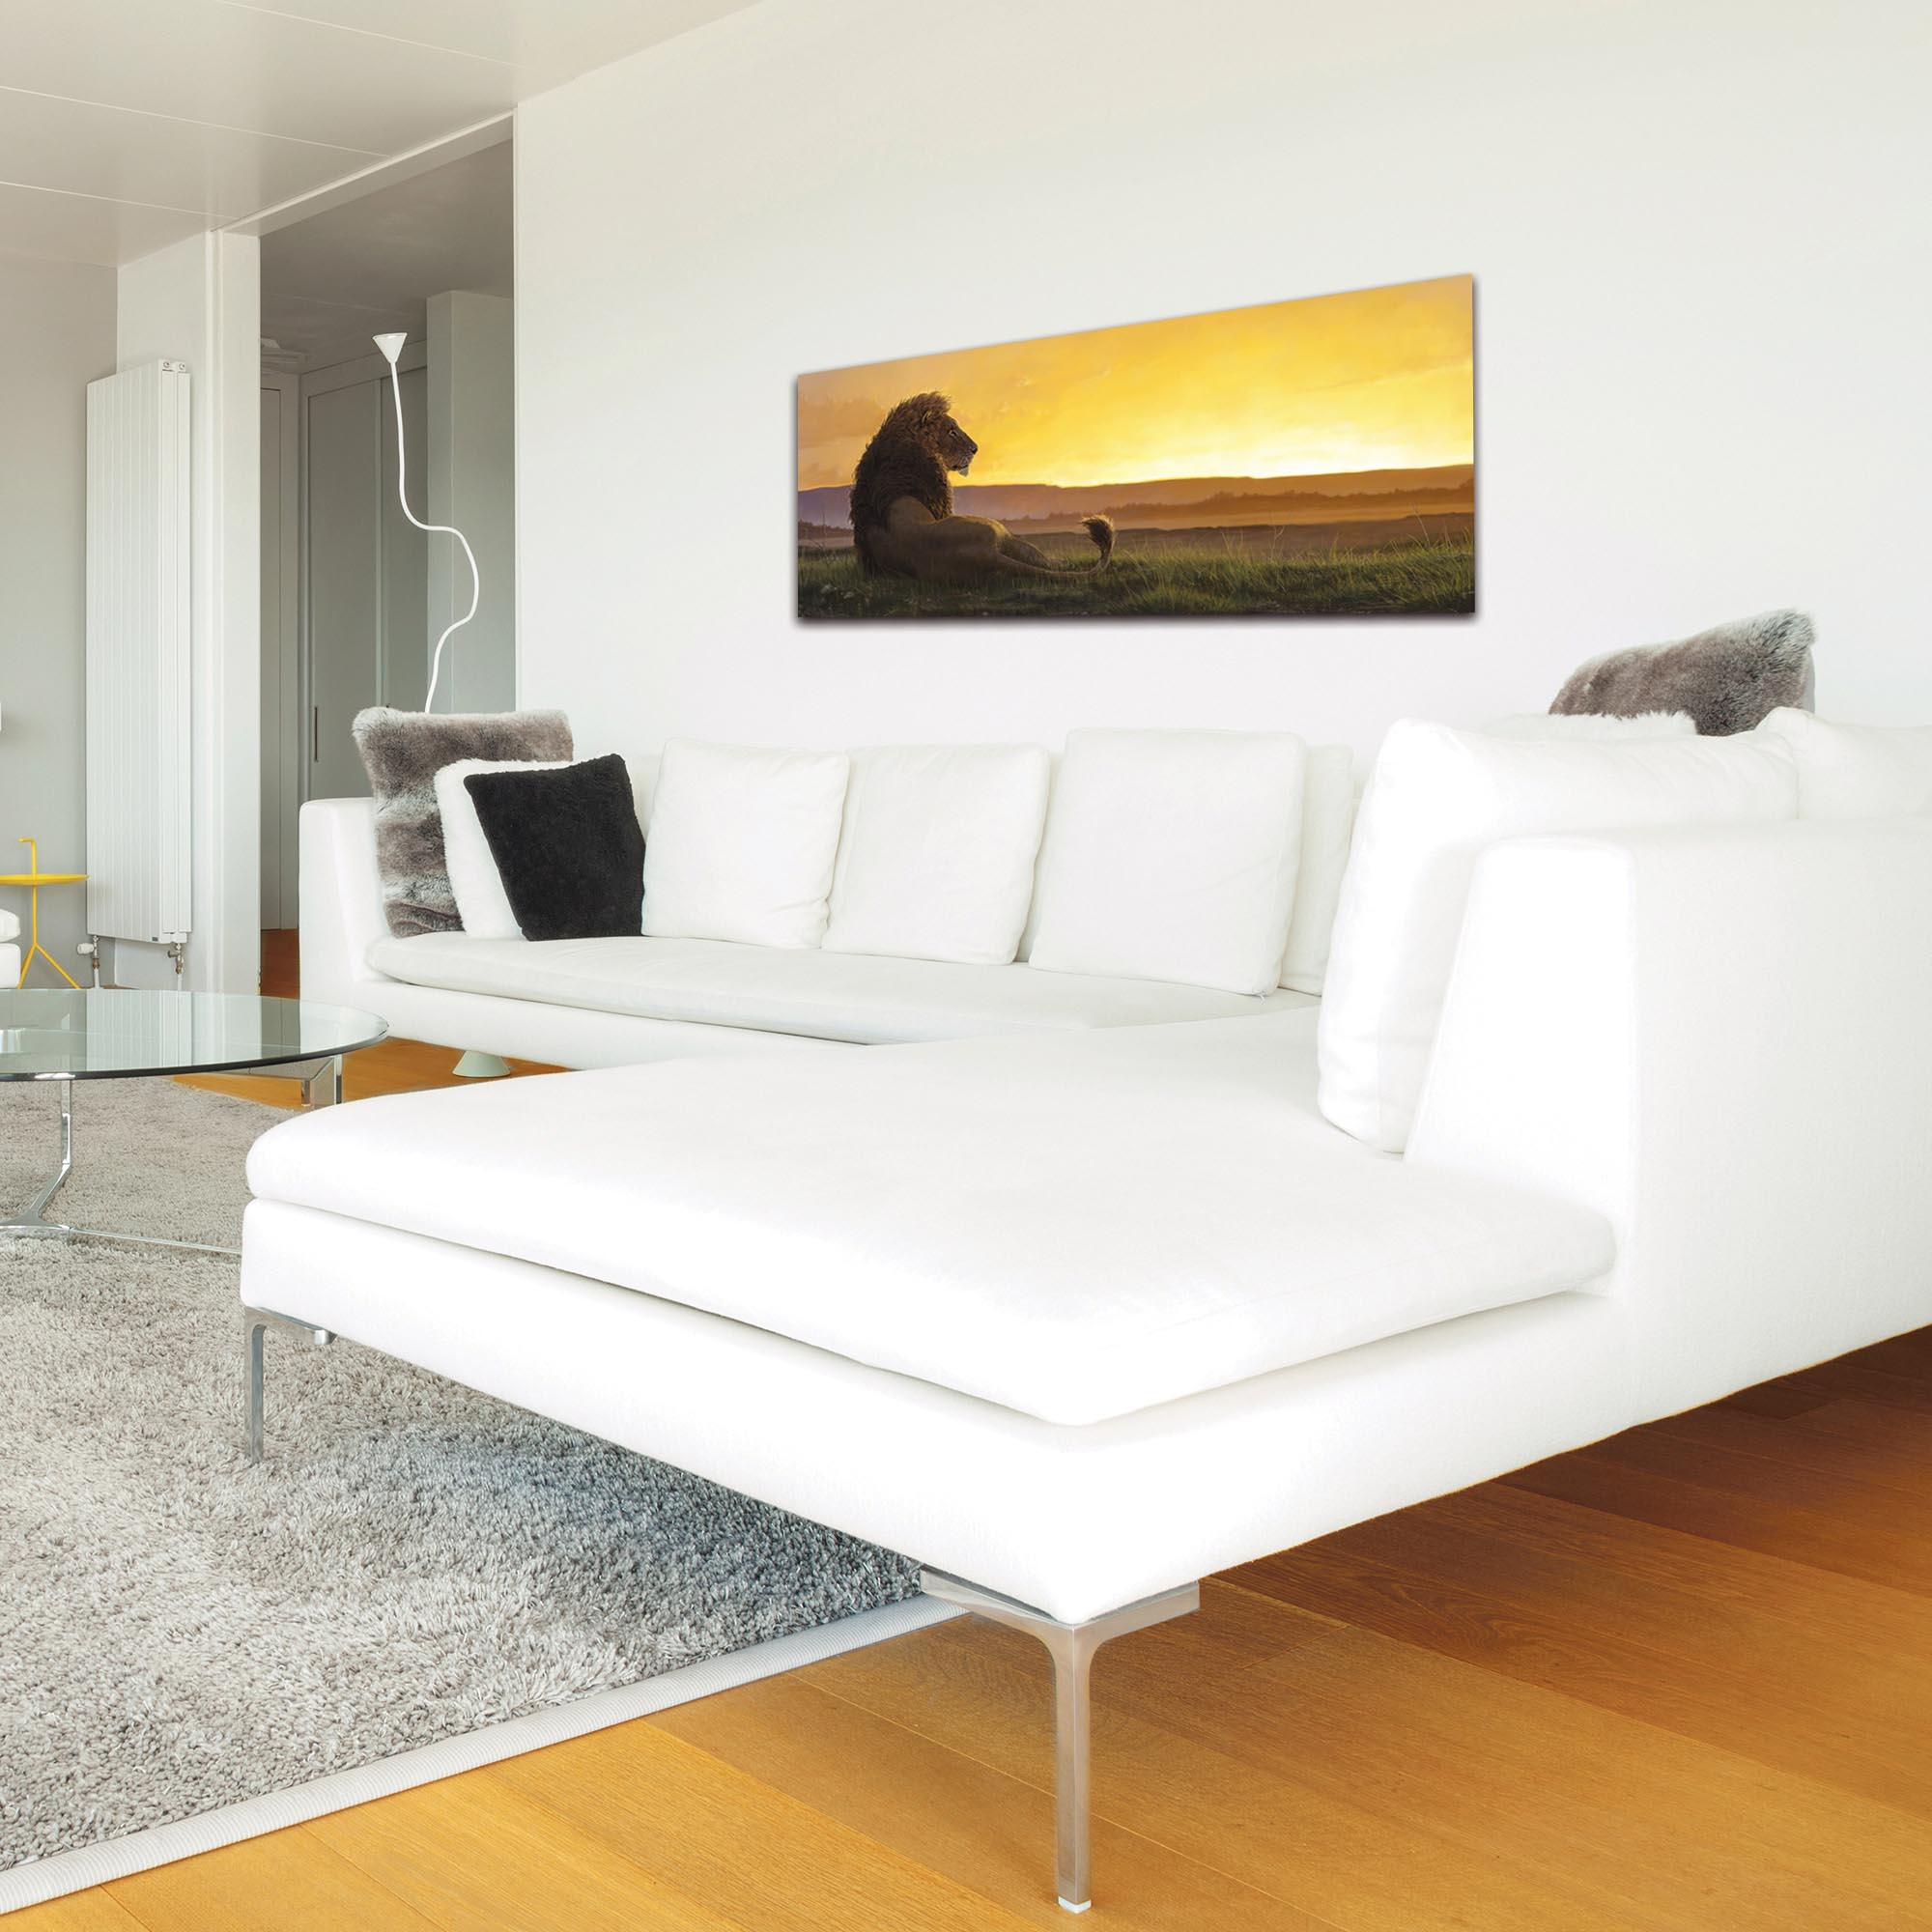 Expressionist Wall Art 'Lion in the Sun' - Wildlife Decor on Metal or Plexiglass - Lifestyle View